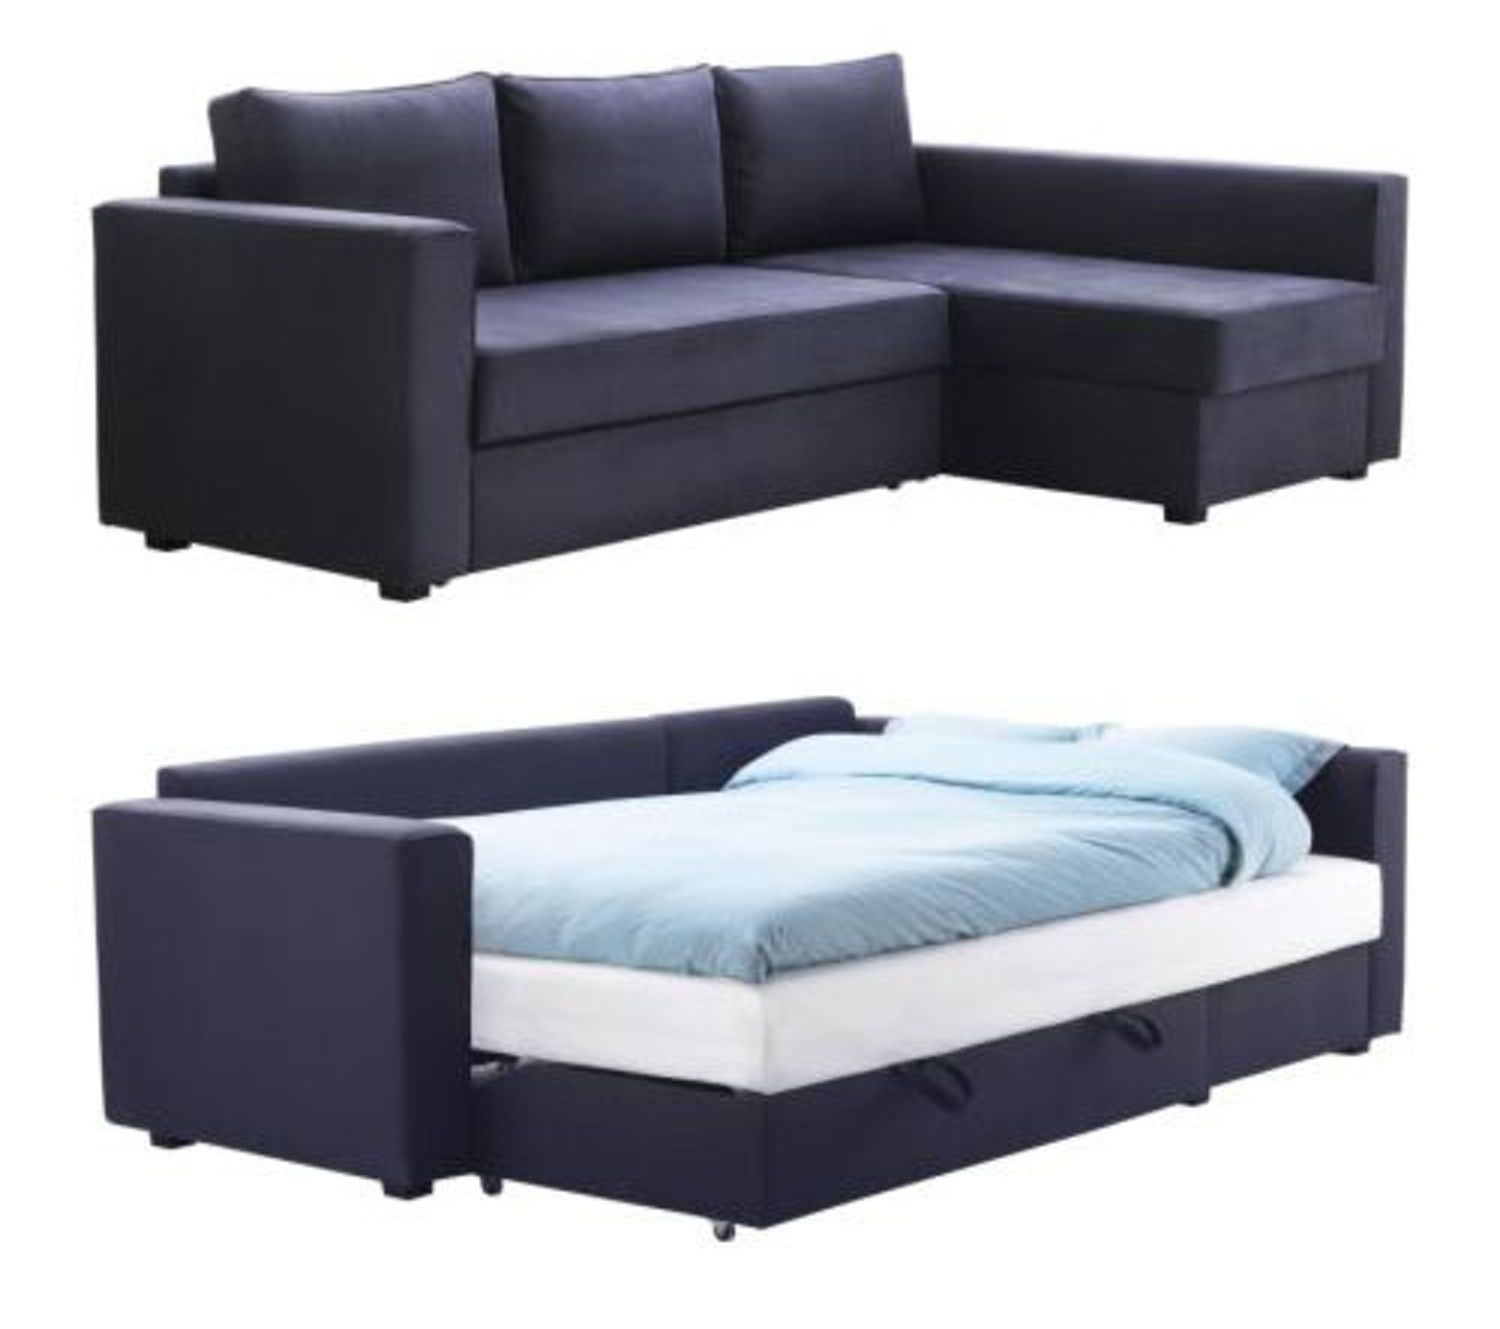 Queen Convertible Sofa Bed Ideas On Foter